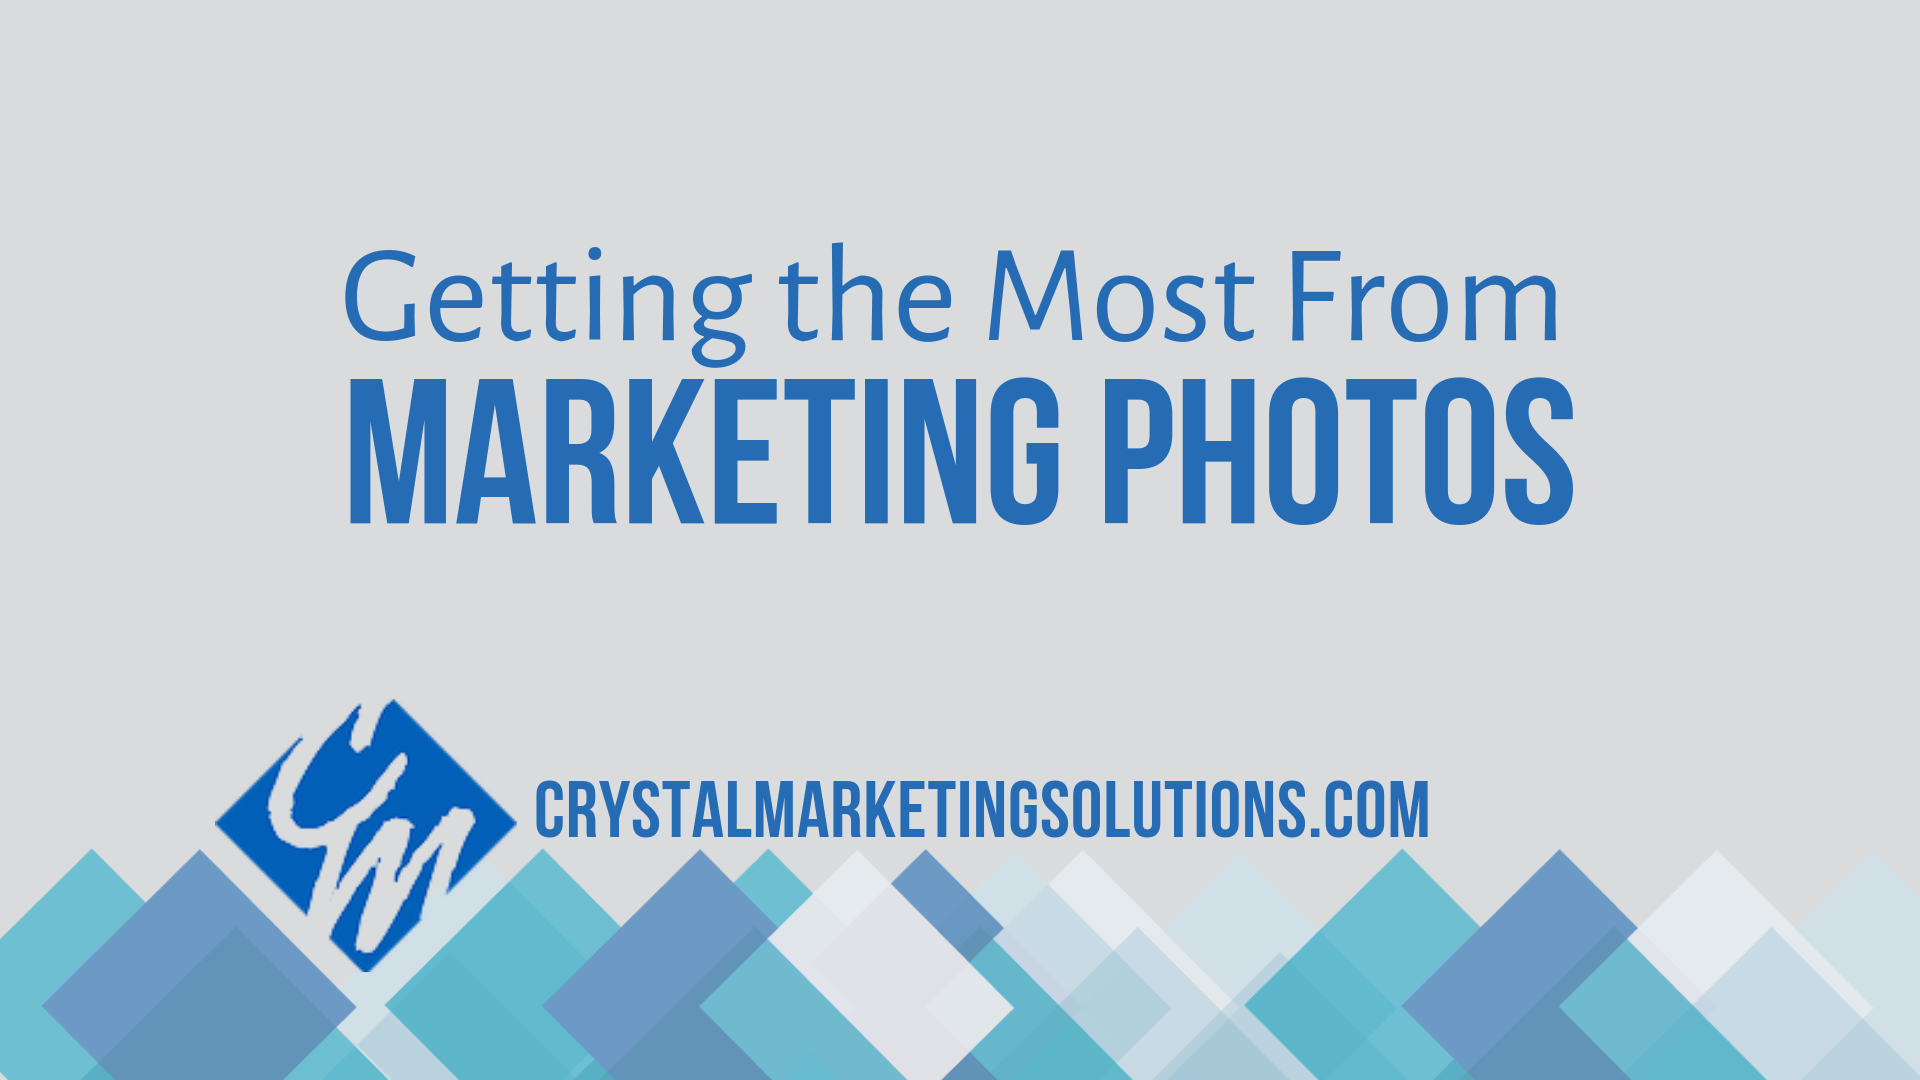 Getting the Most From Marketing Photos